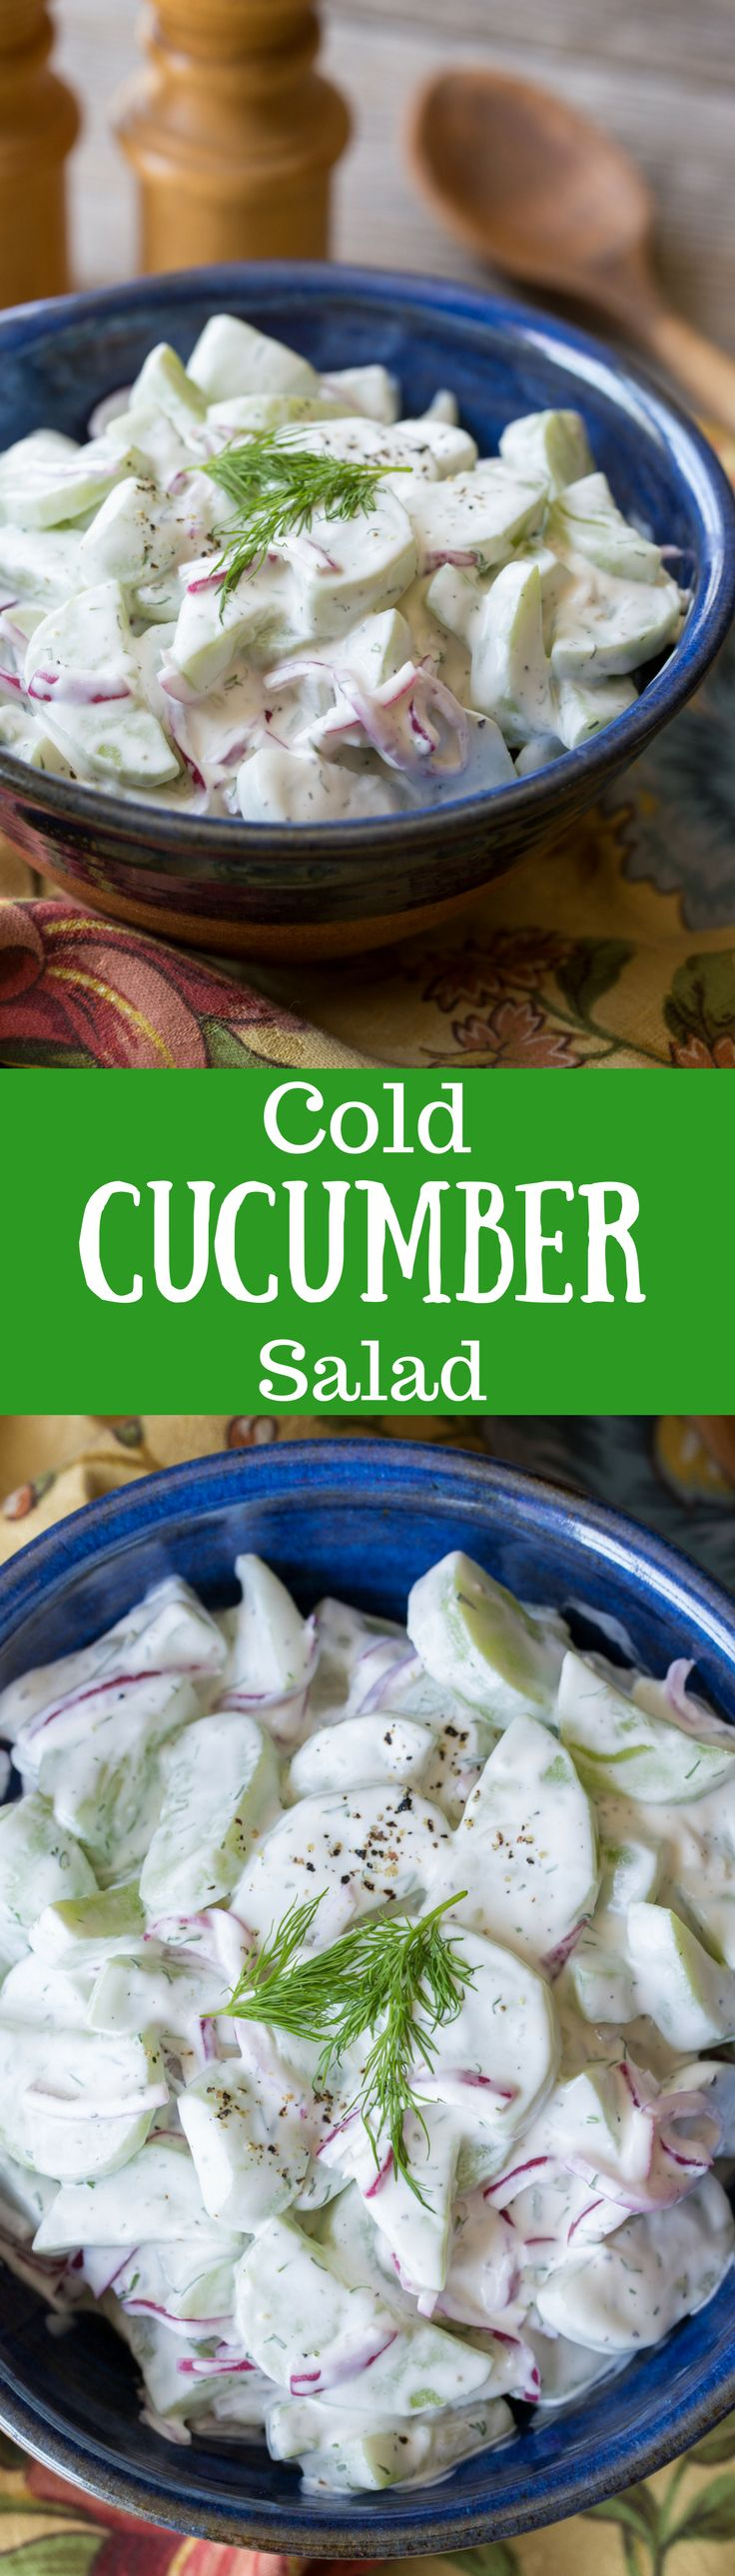 Fresh from the garden - crispy, Cold Cucumber Salad with fresh dill ~ a delicious salad made with a just a few fresh ingredients. Think creamy dill pickle!  www.savingdessert.com